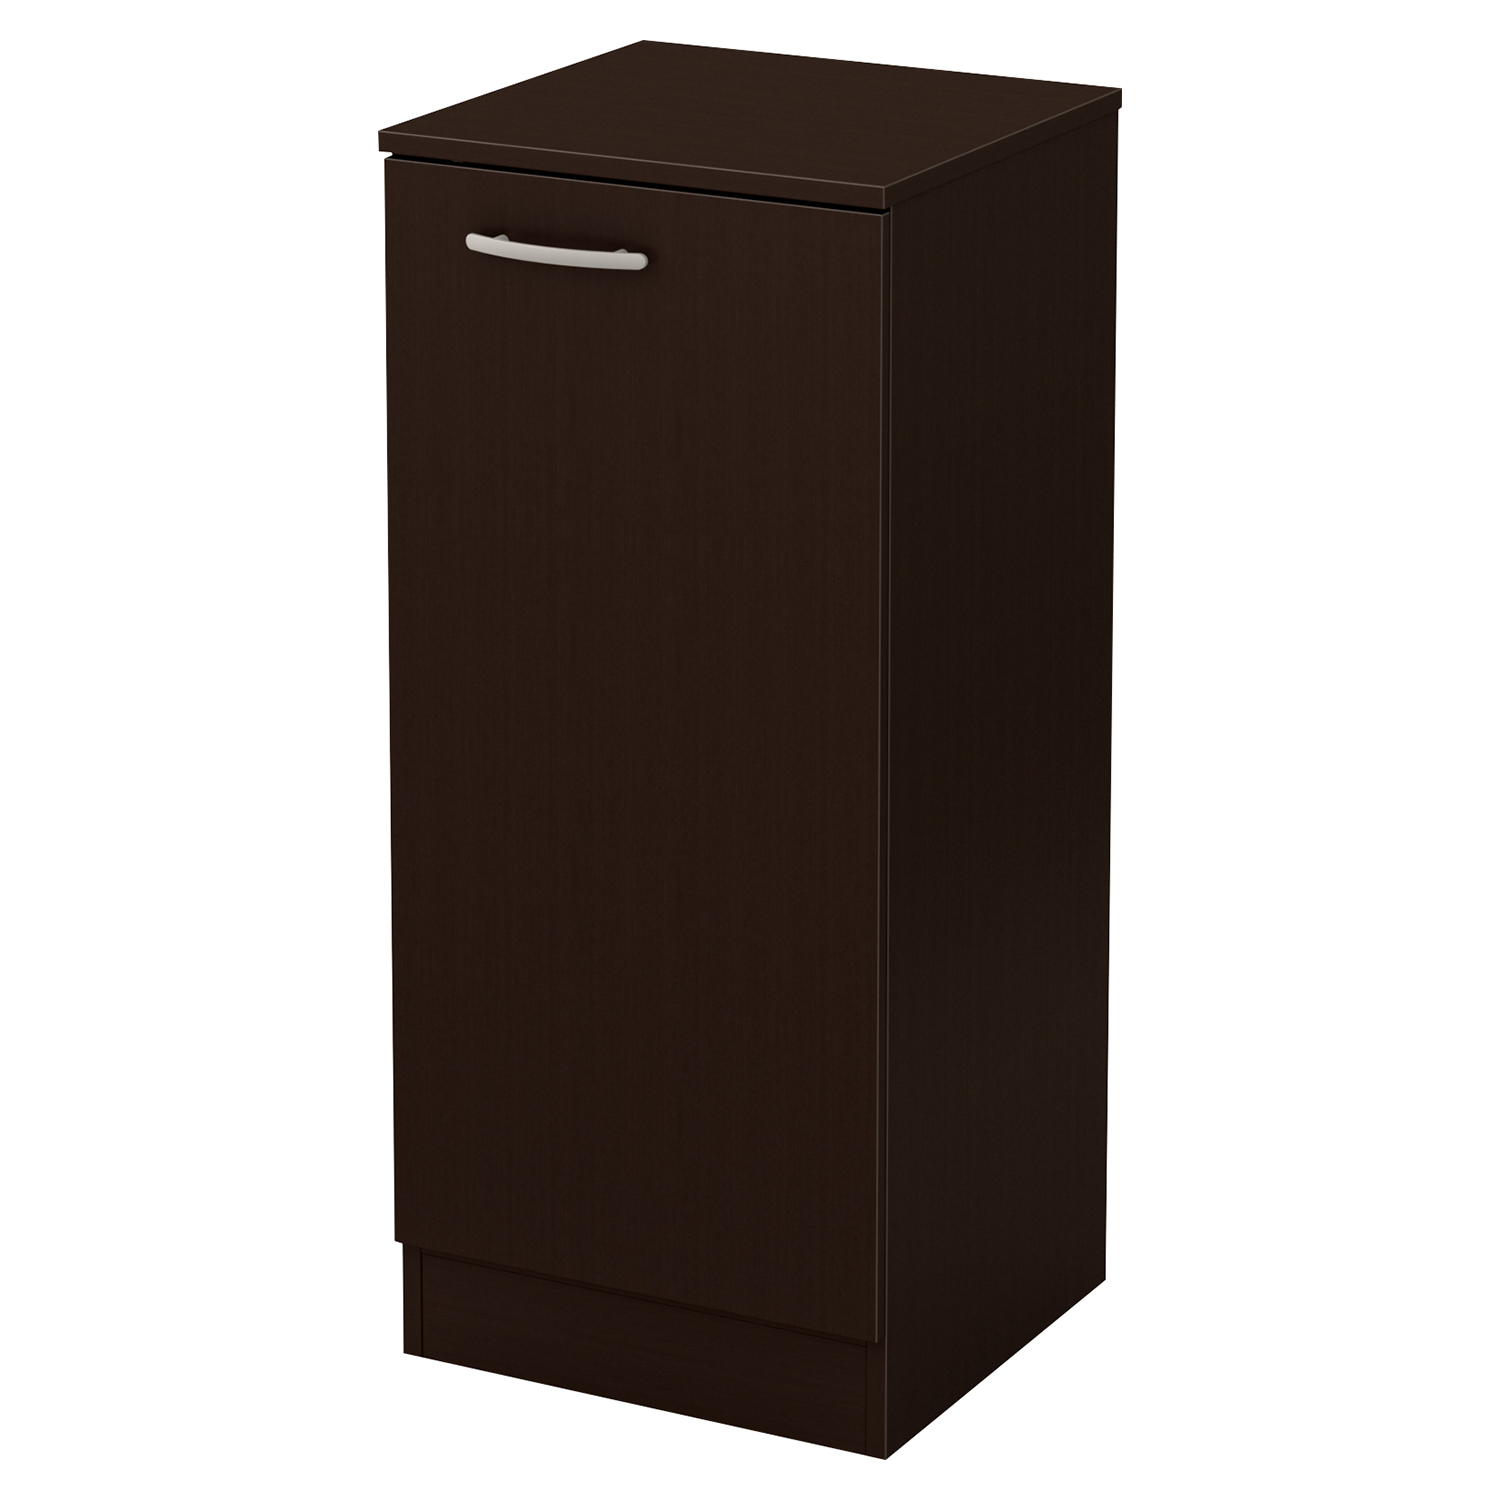 Axess Narrow Storage Cabinet - Chocolate - SS-10183